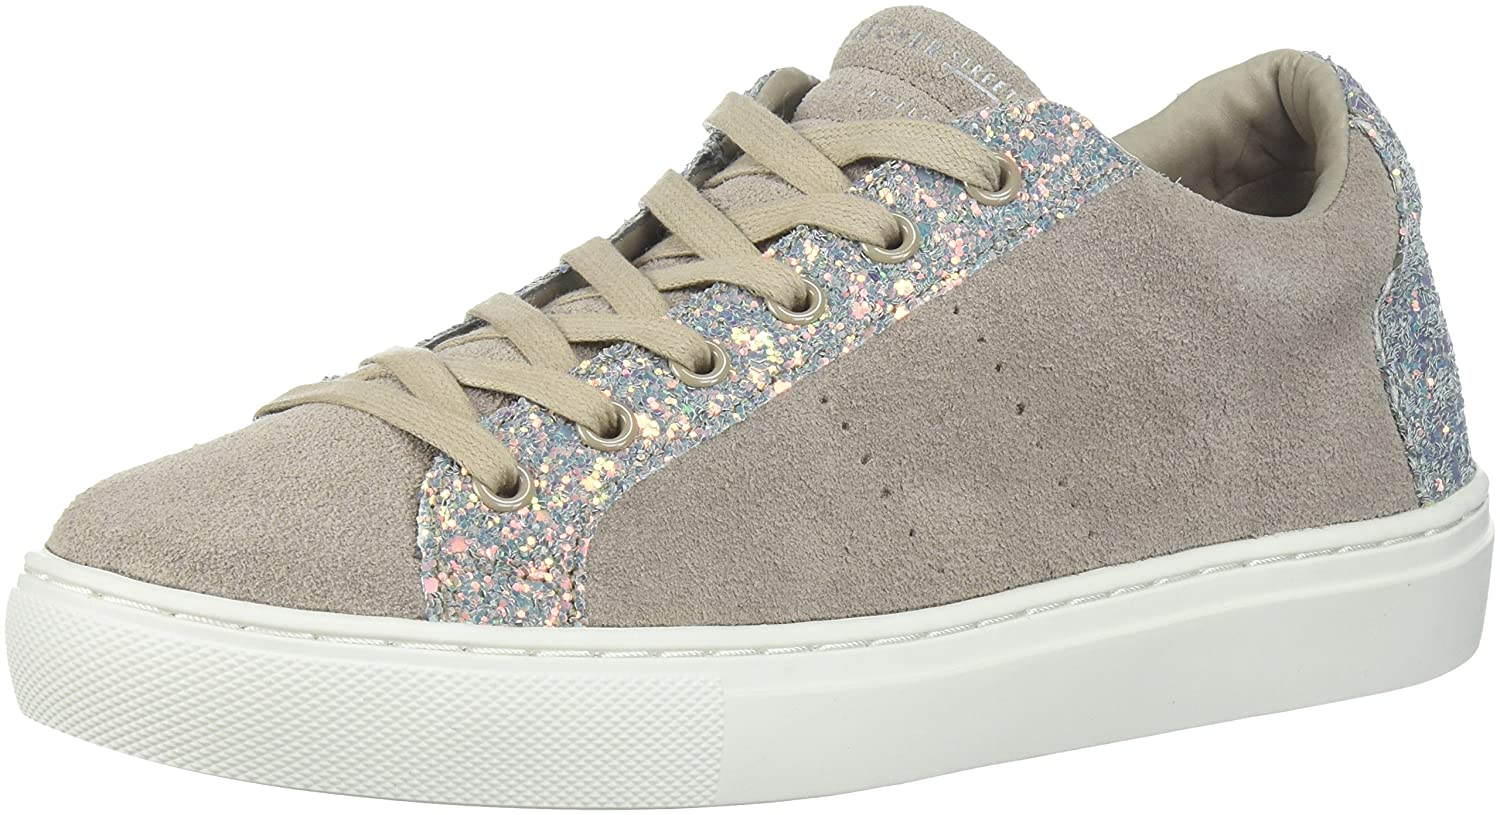 Skechers Women's Side Street-Glitter Star Cut Out Sneaker B0742RXFSM 8.5 B(M) US|Taupe